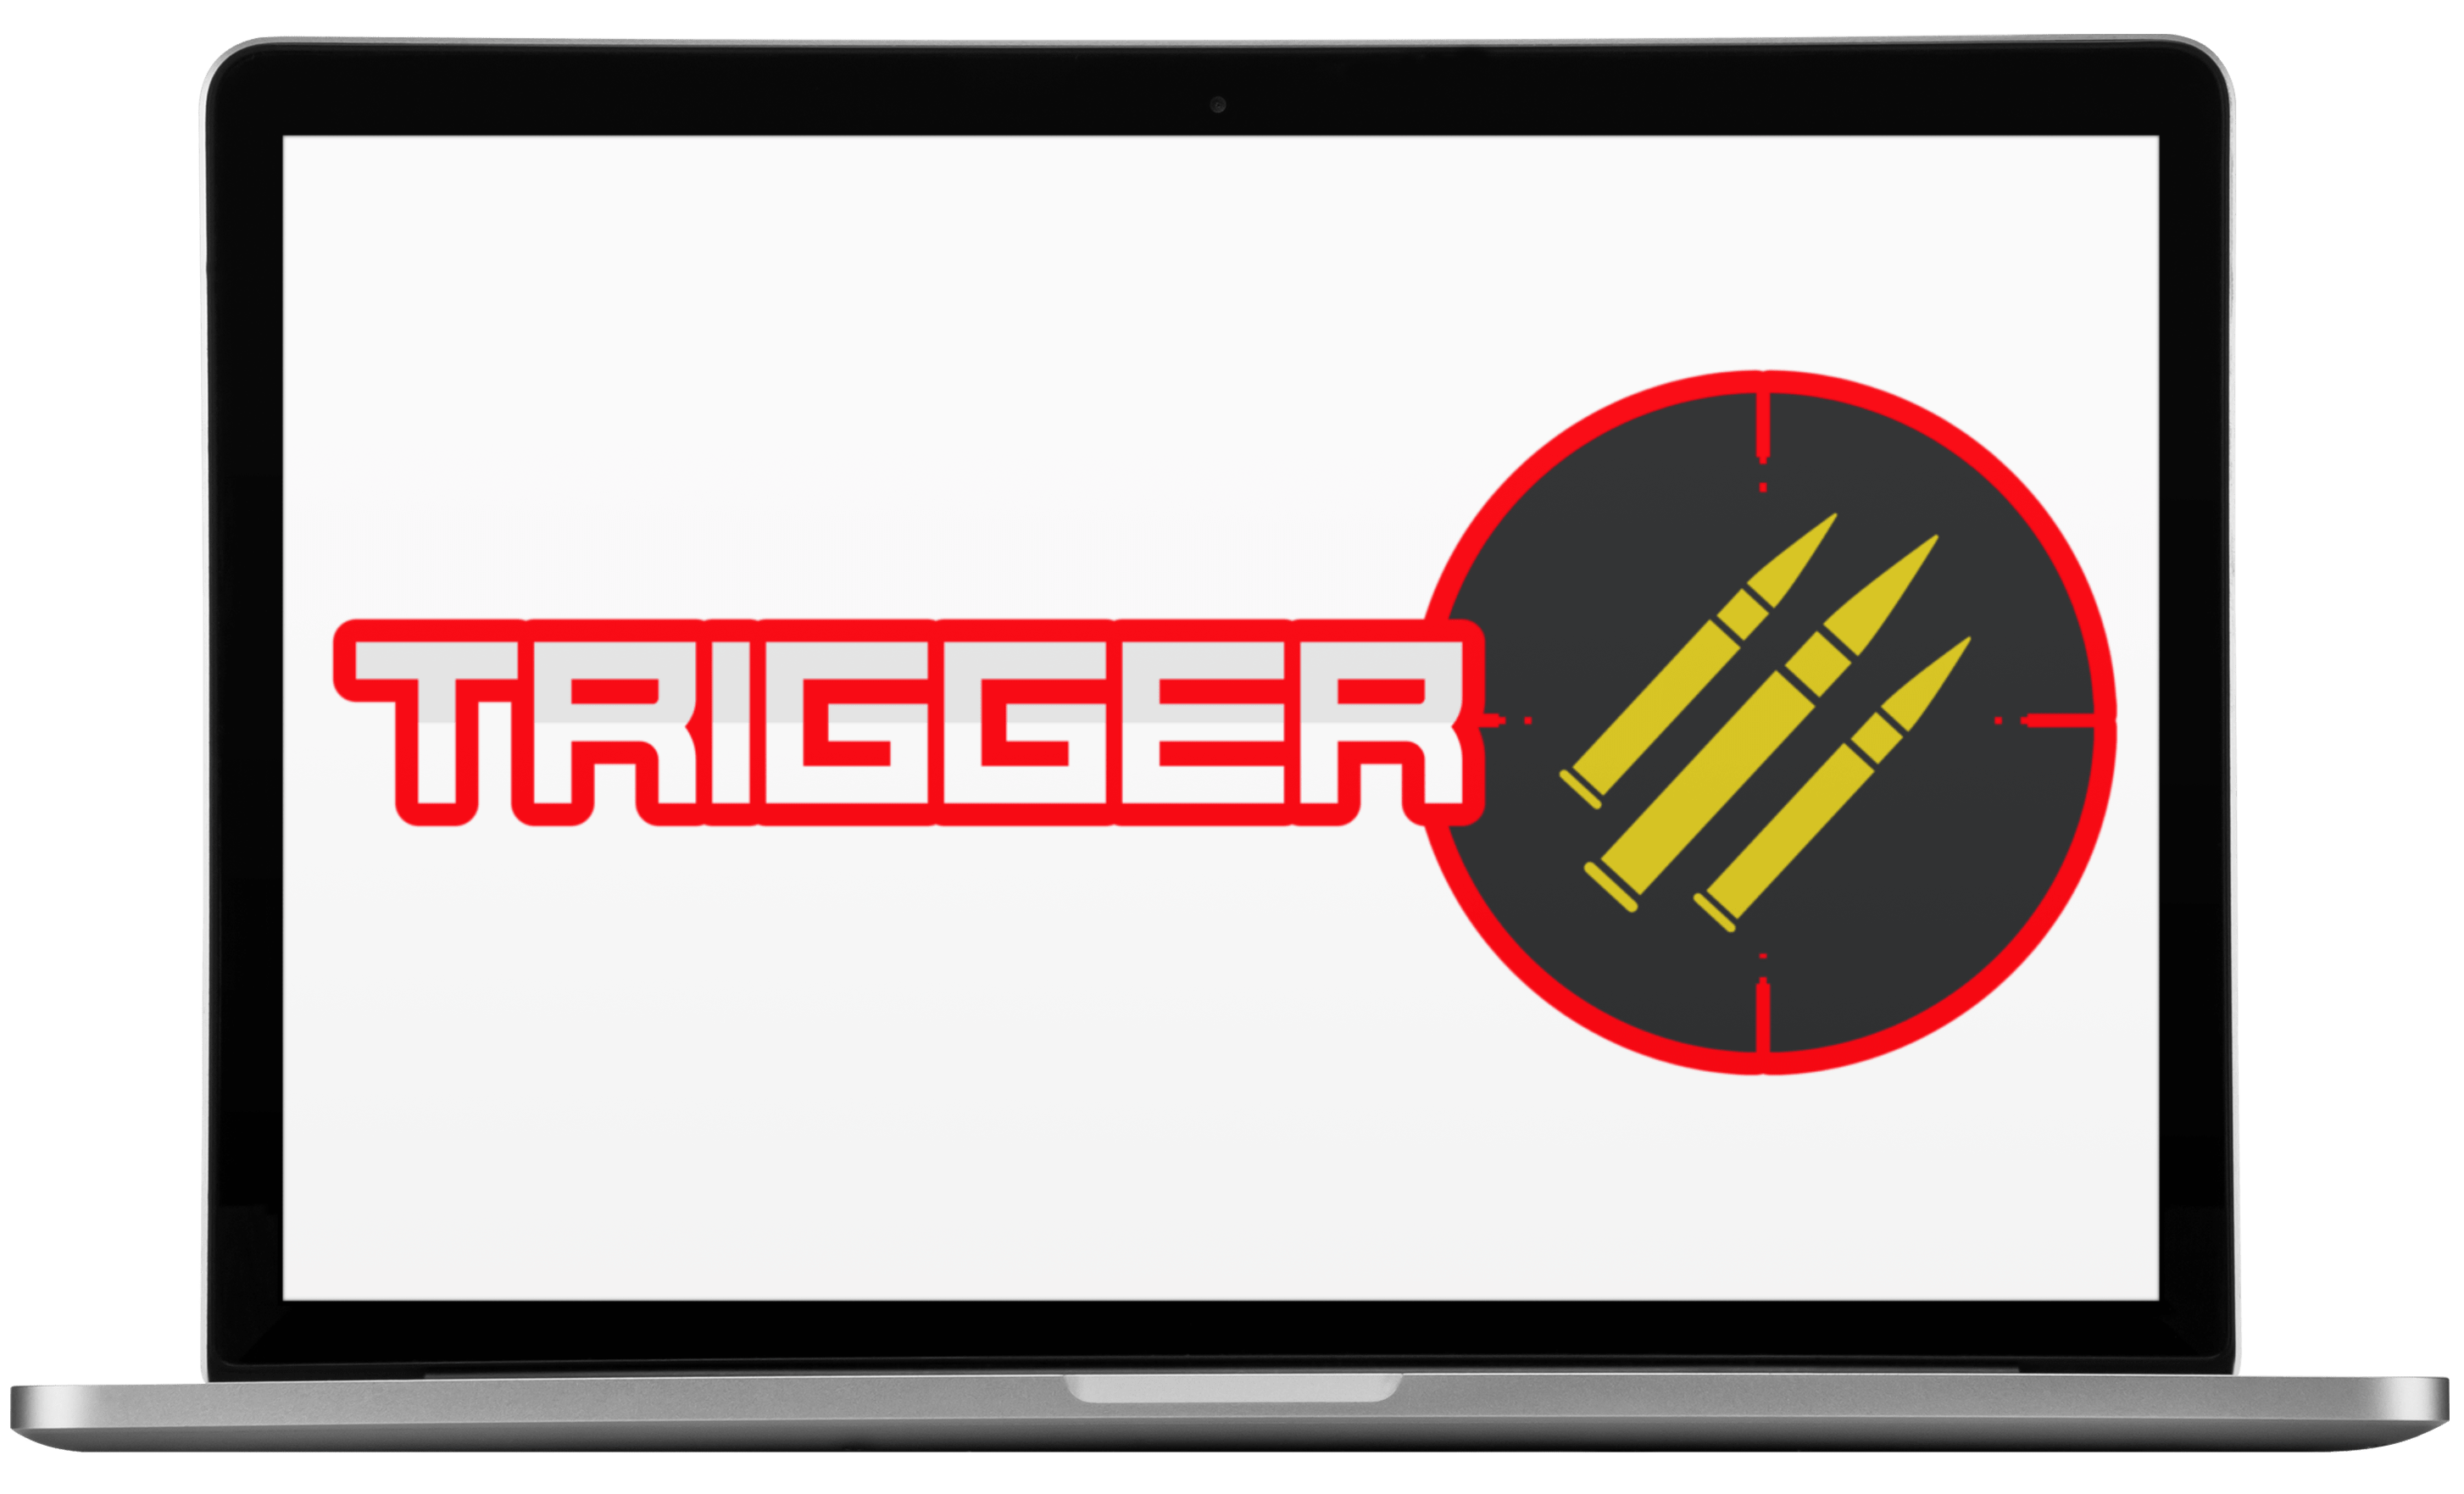 Trigger Review